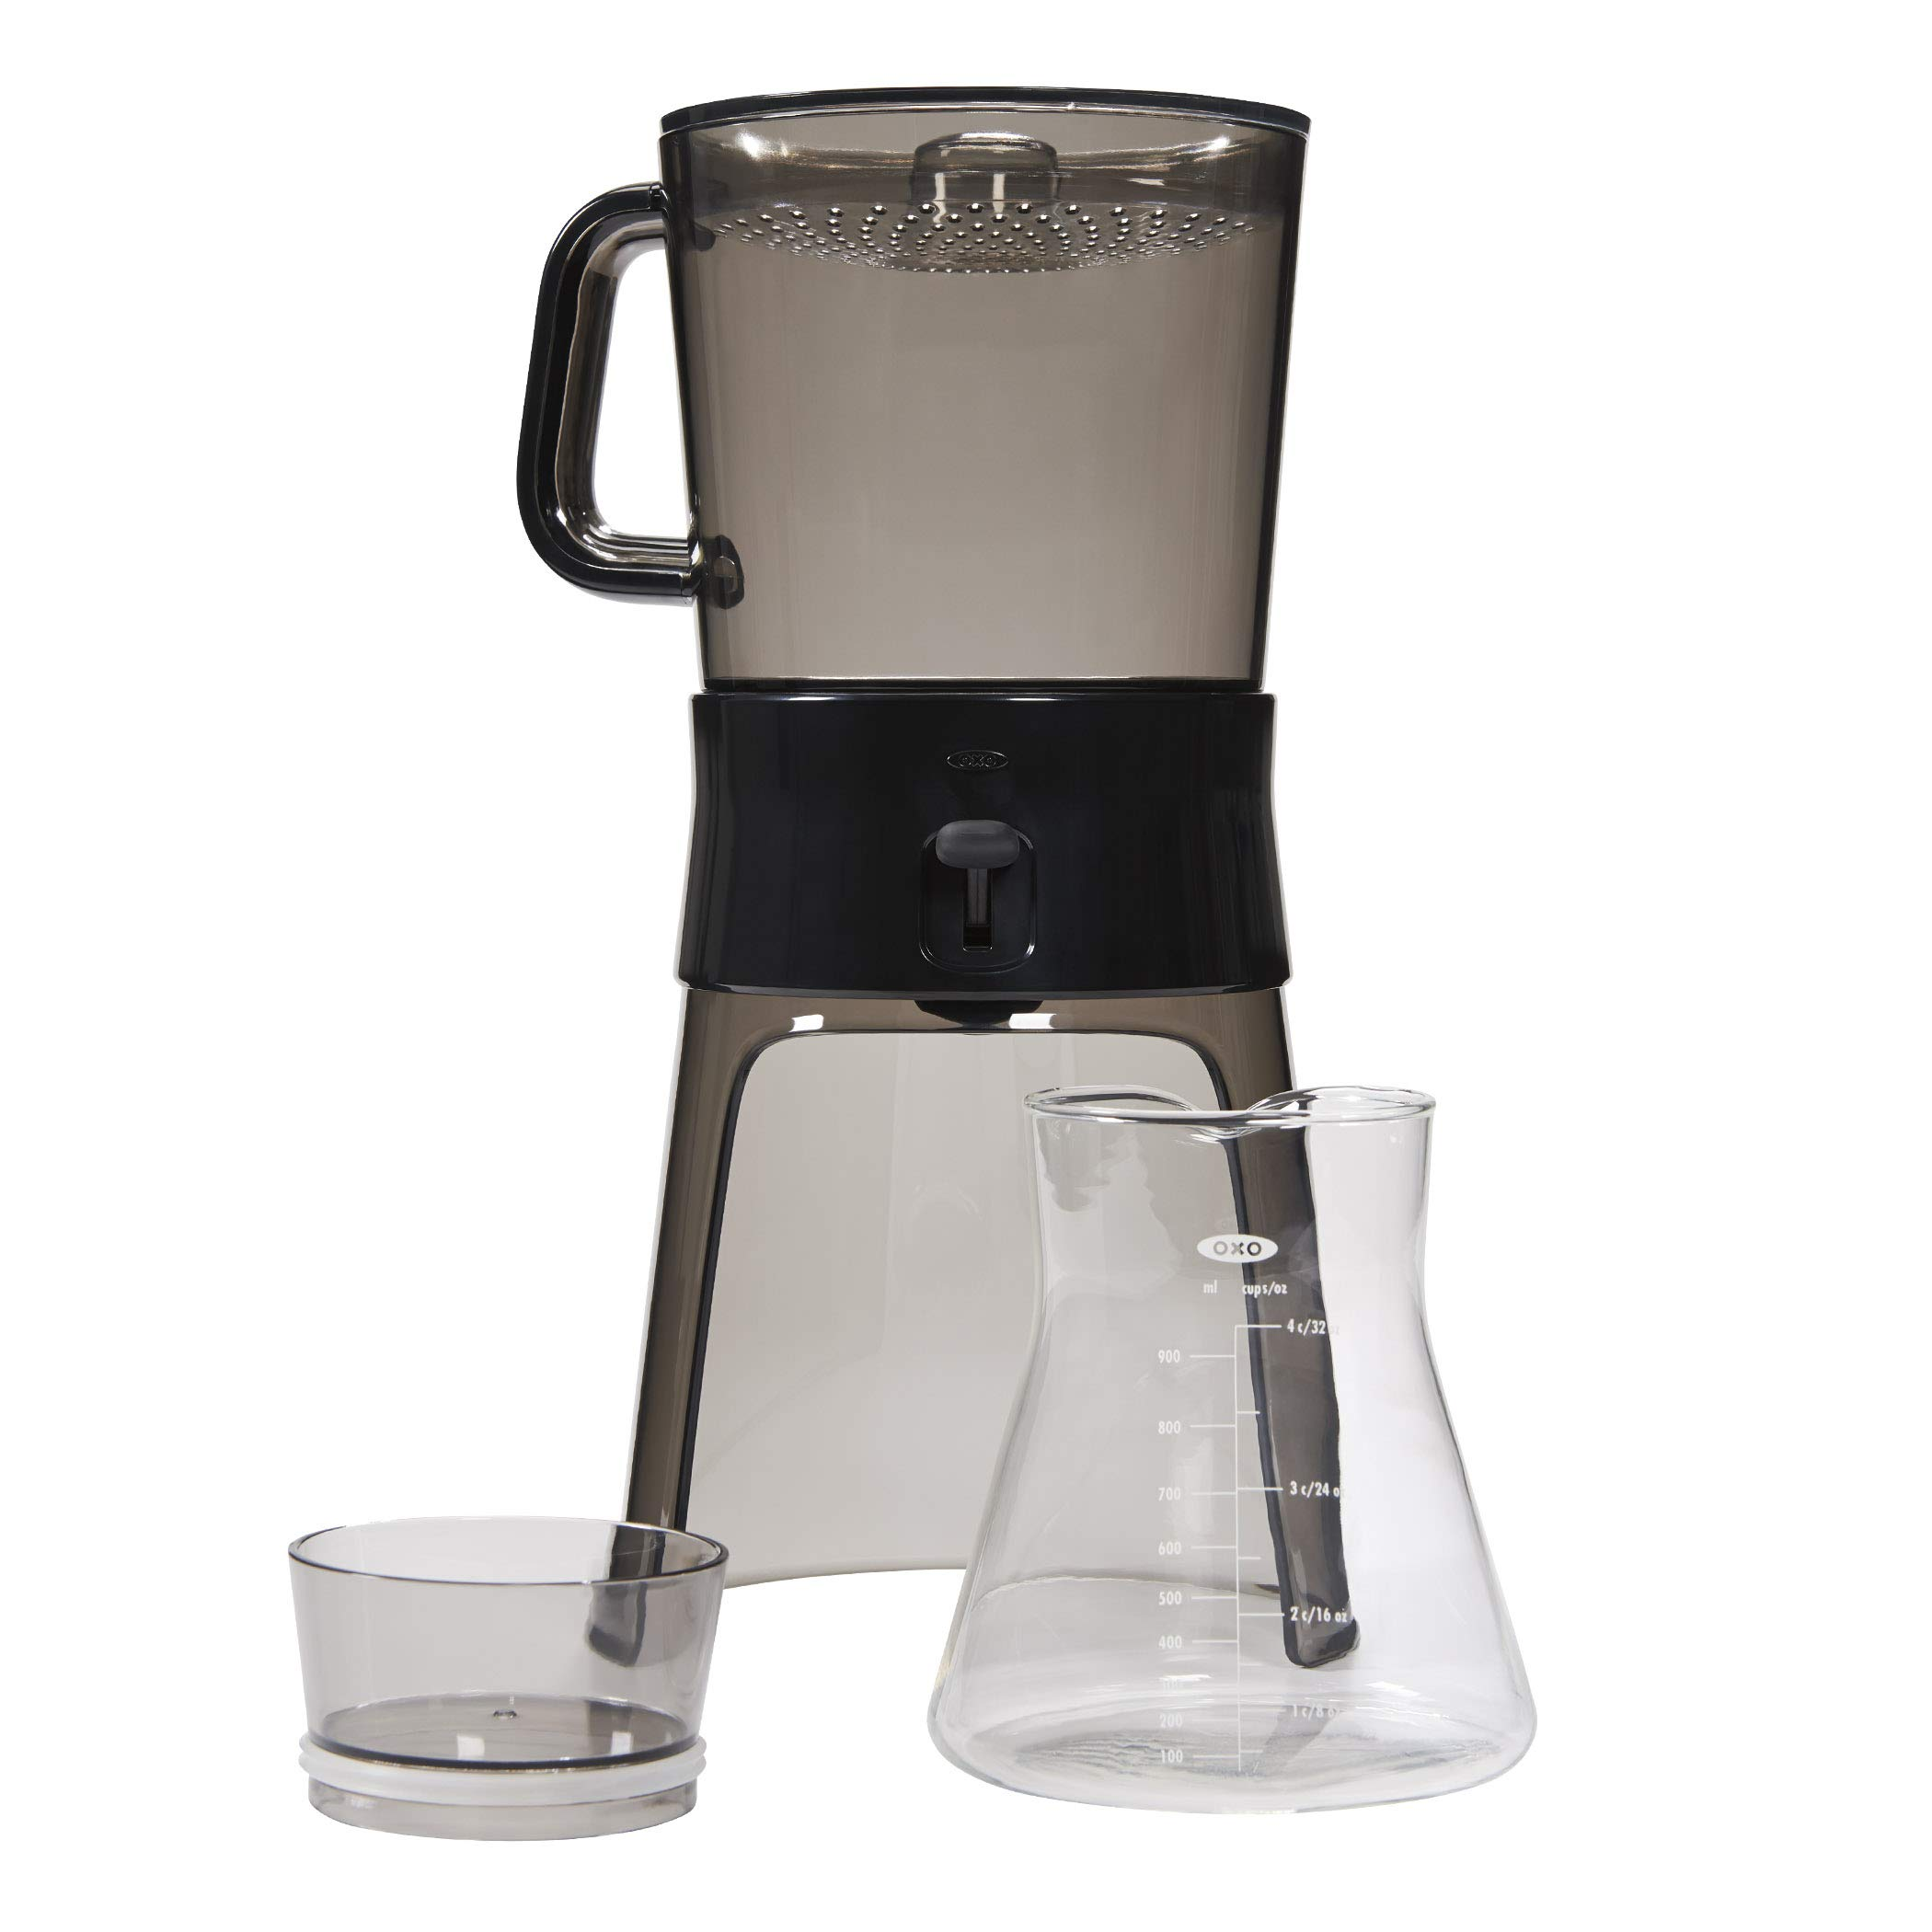 OXO BREW Cold Brew Coffee Maker (32 Ounces) with 10 Paper Filters by OXO